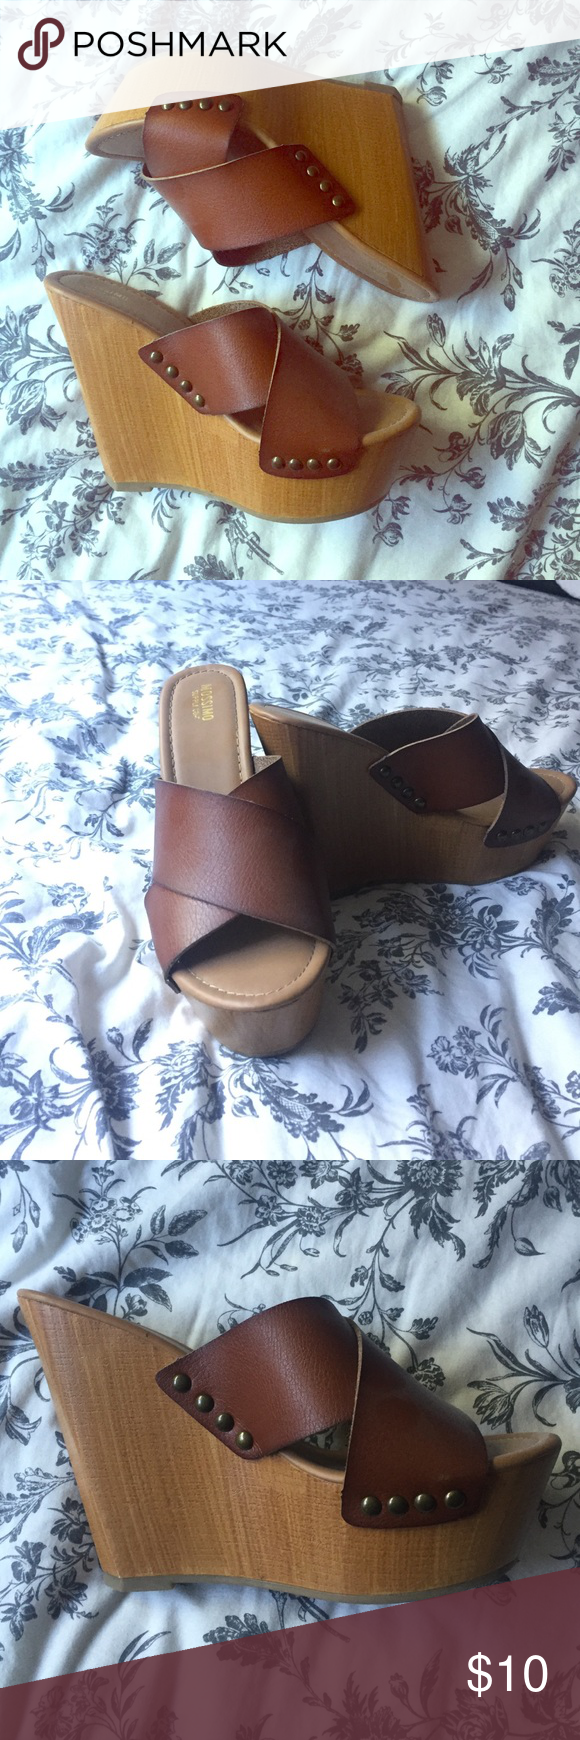 Wedge sandals Cute chunky wedge sandals from target camel color size 8 Mossimo Supply Co Shoes Heels